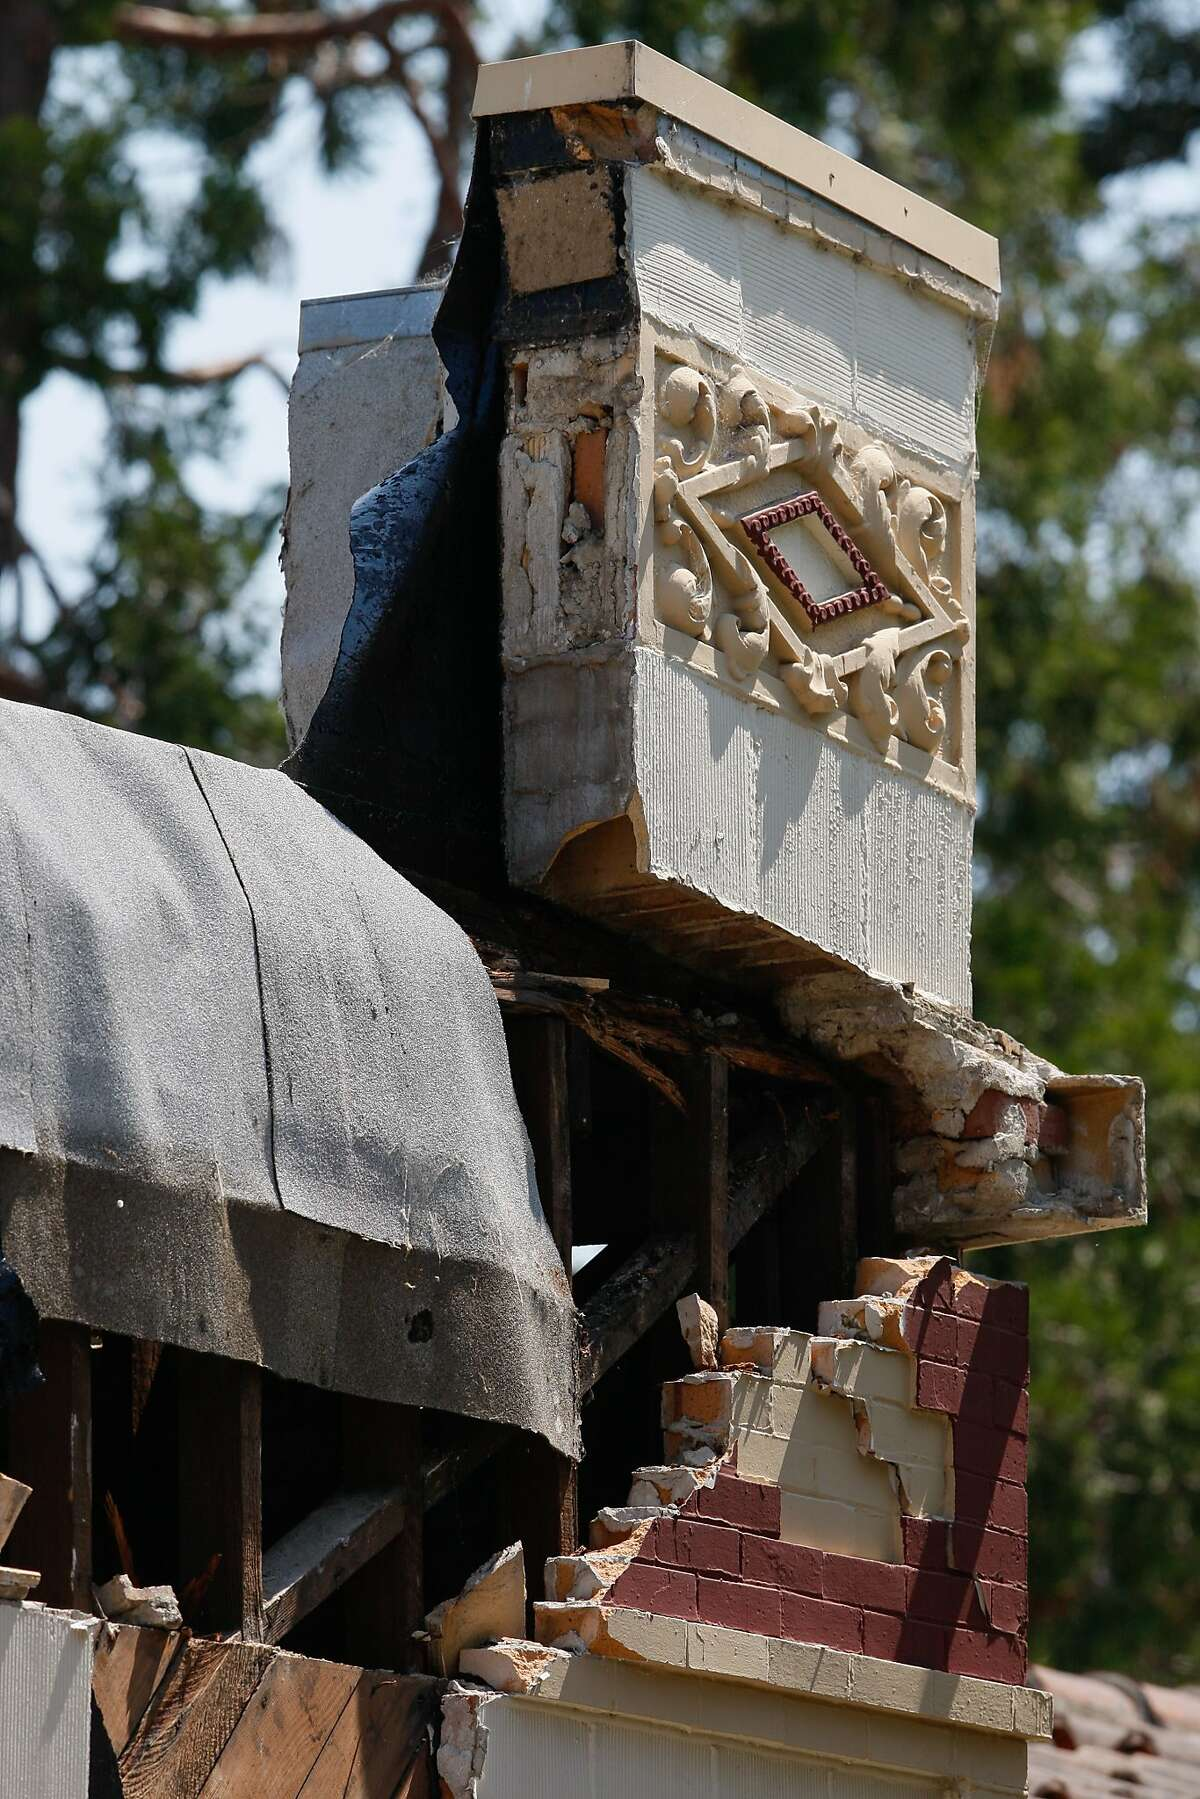 heavy damage is seen on 587 Jefferson Street after yesterday morning's earthquake on August 25, 2014 in Napa, CA.